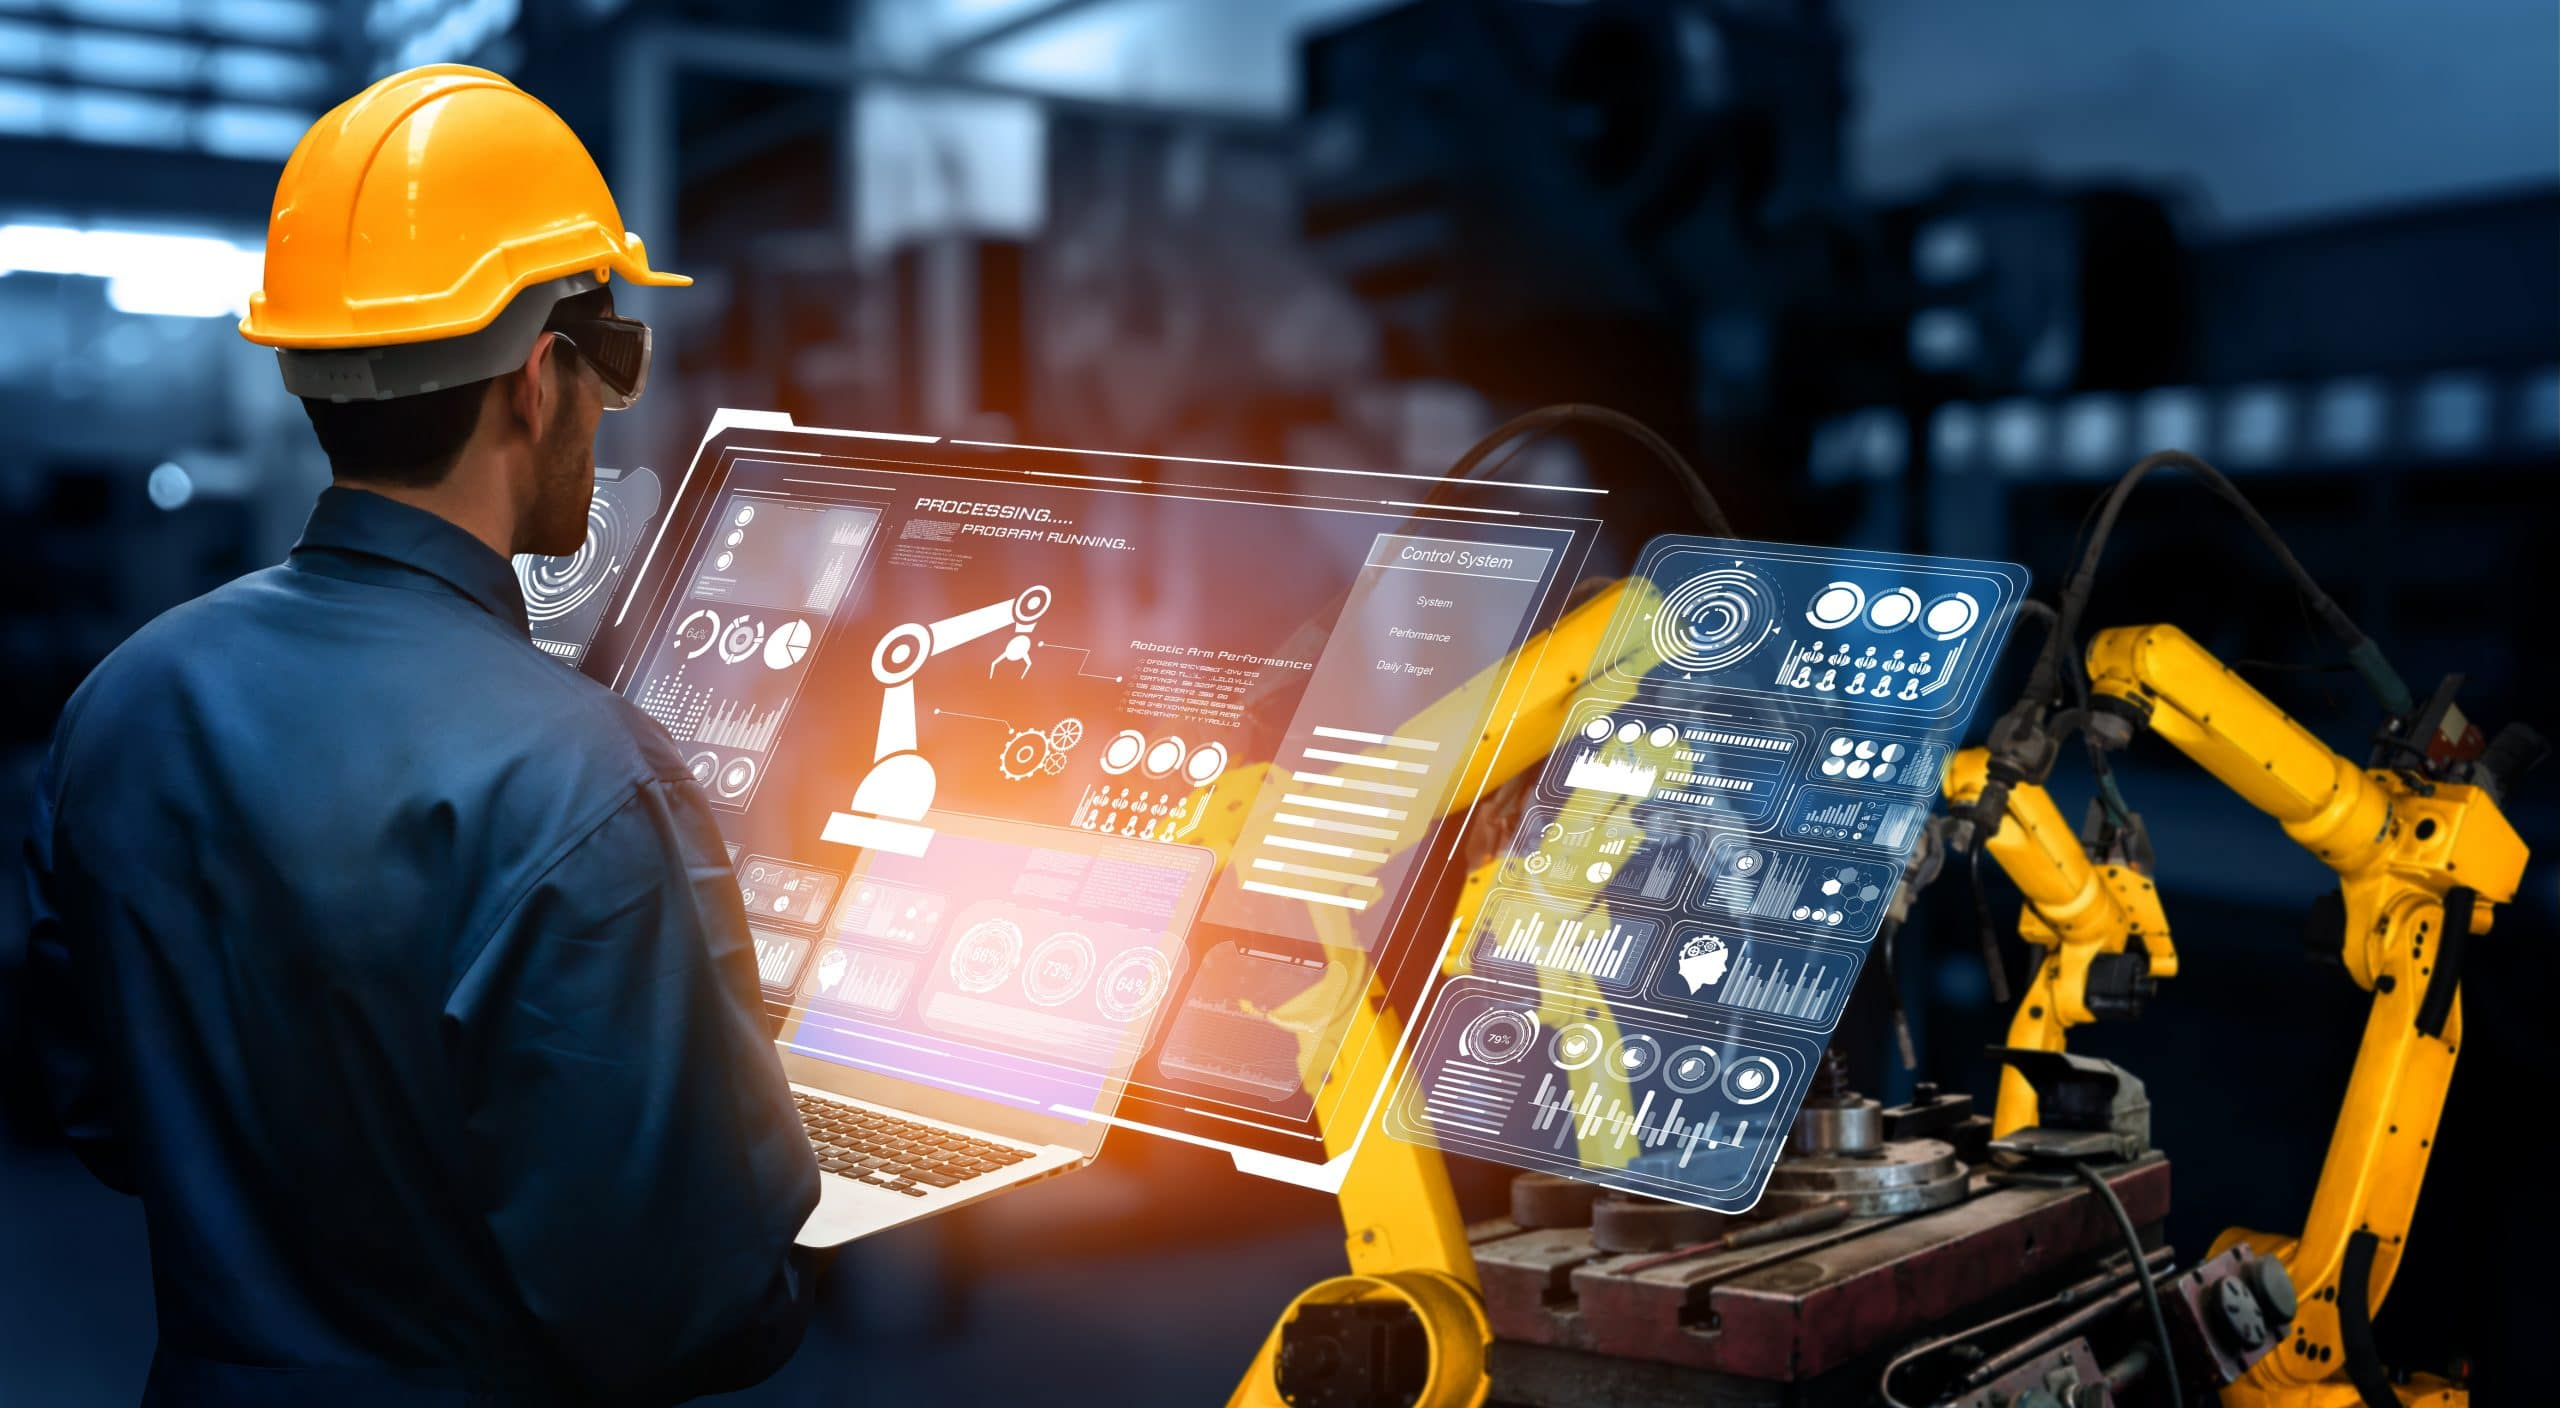 automation manufacturing process of the Industry